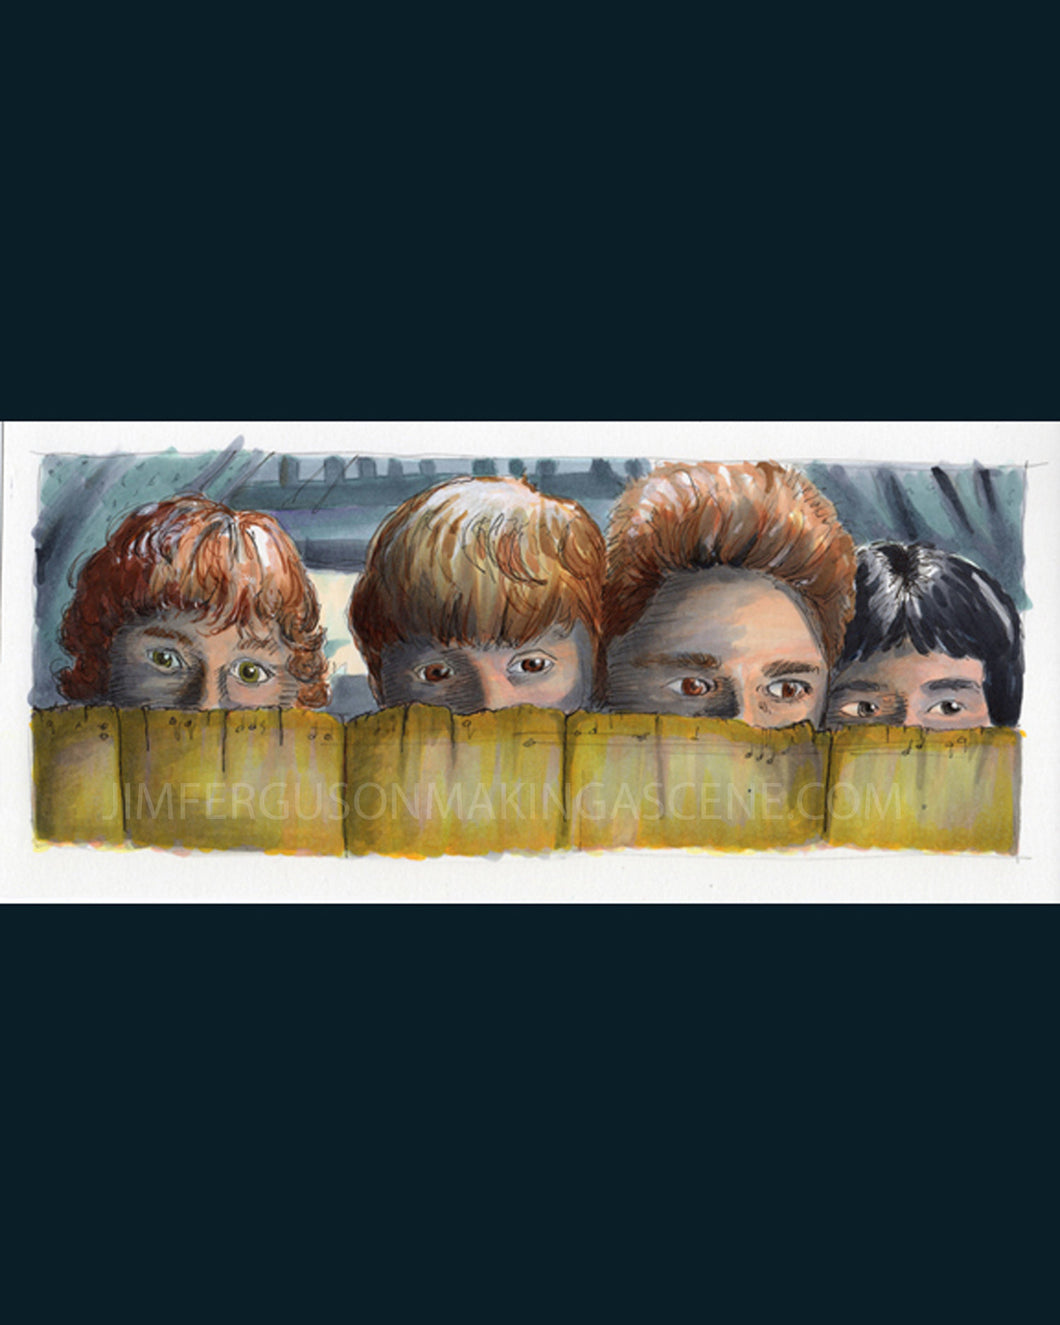 The Goonies - The Goonies R Good Enough Print By Jim Ferguson